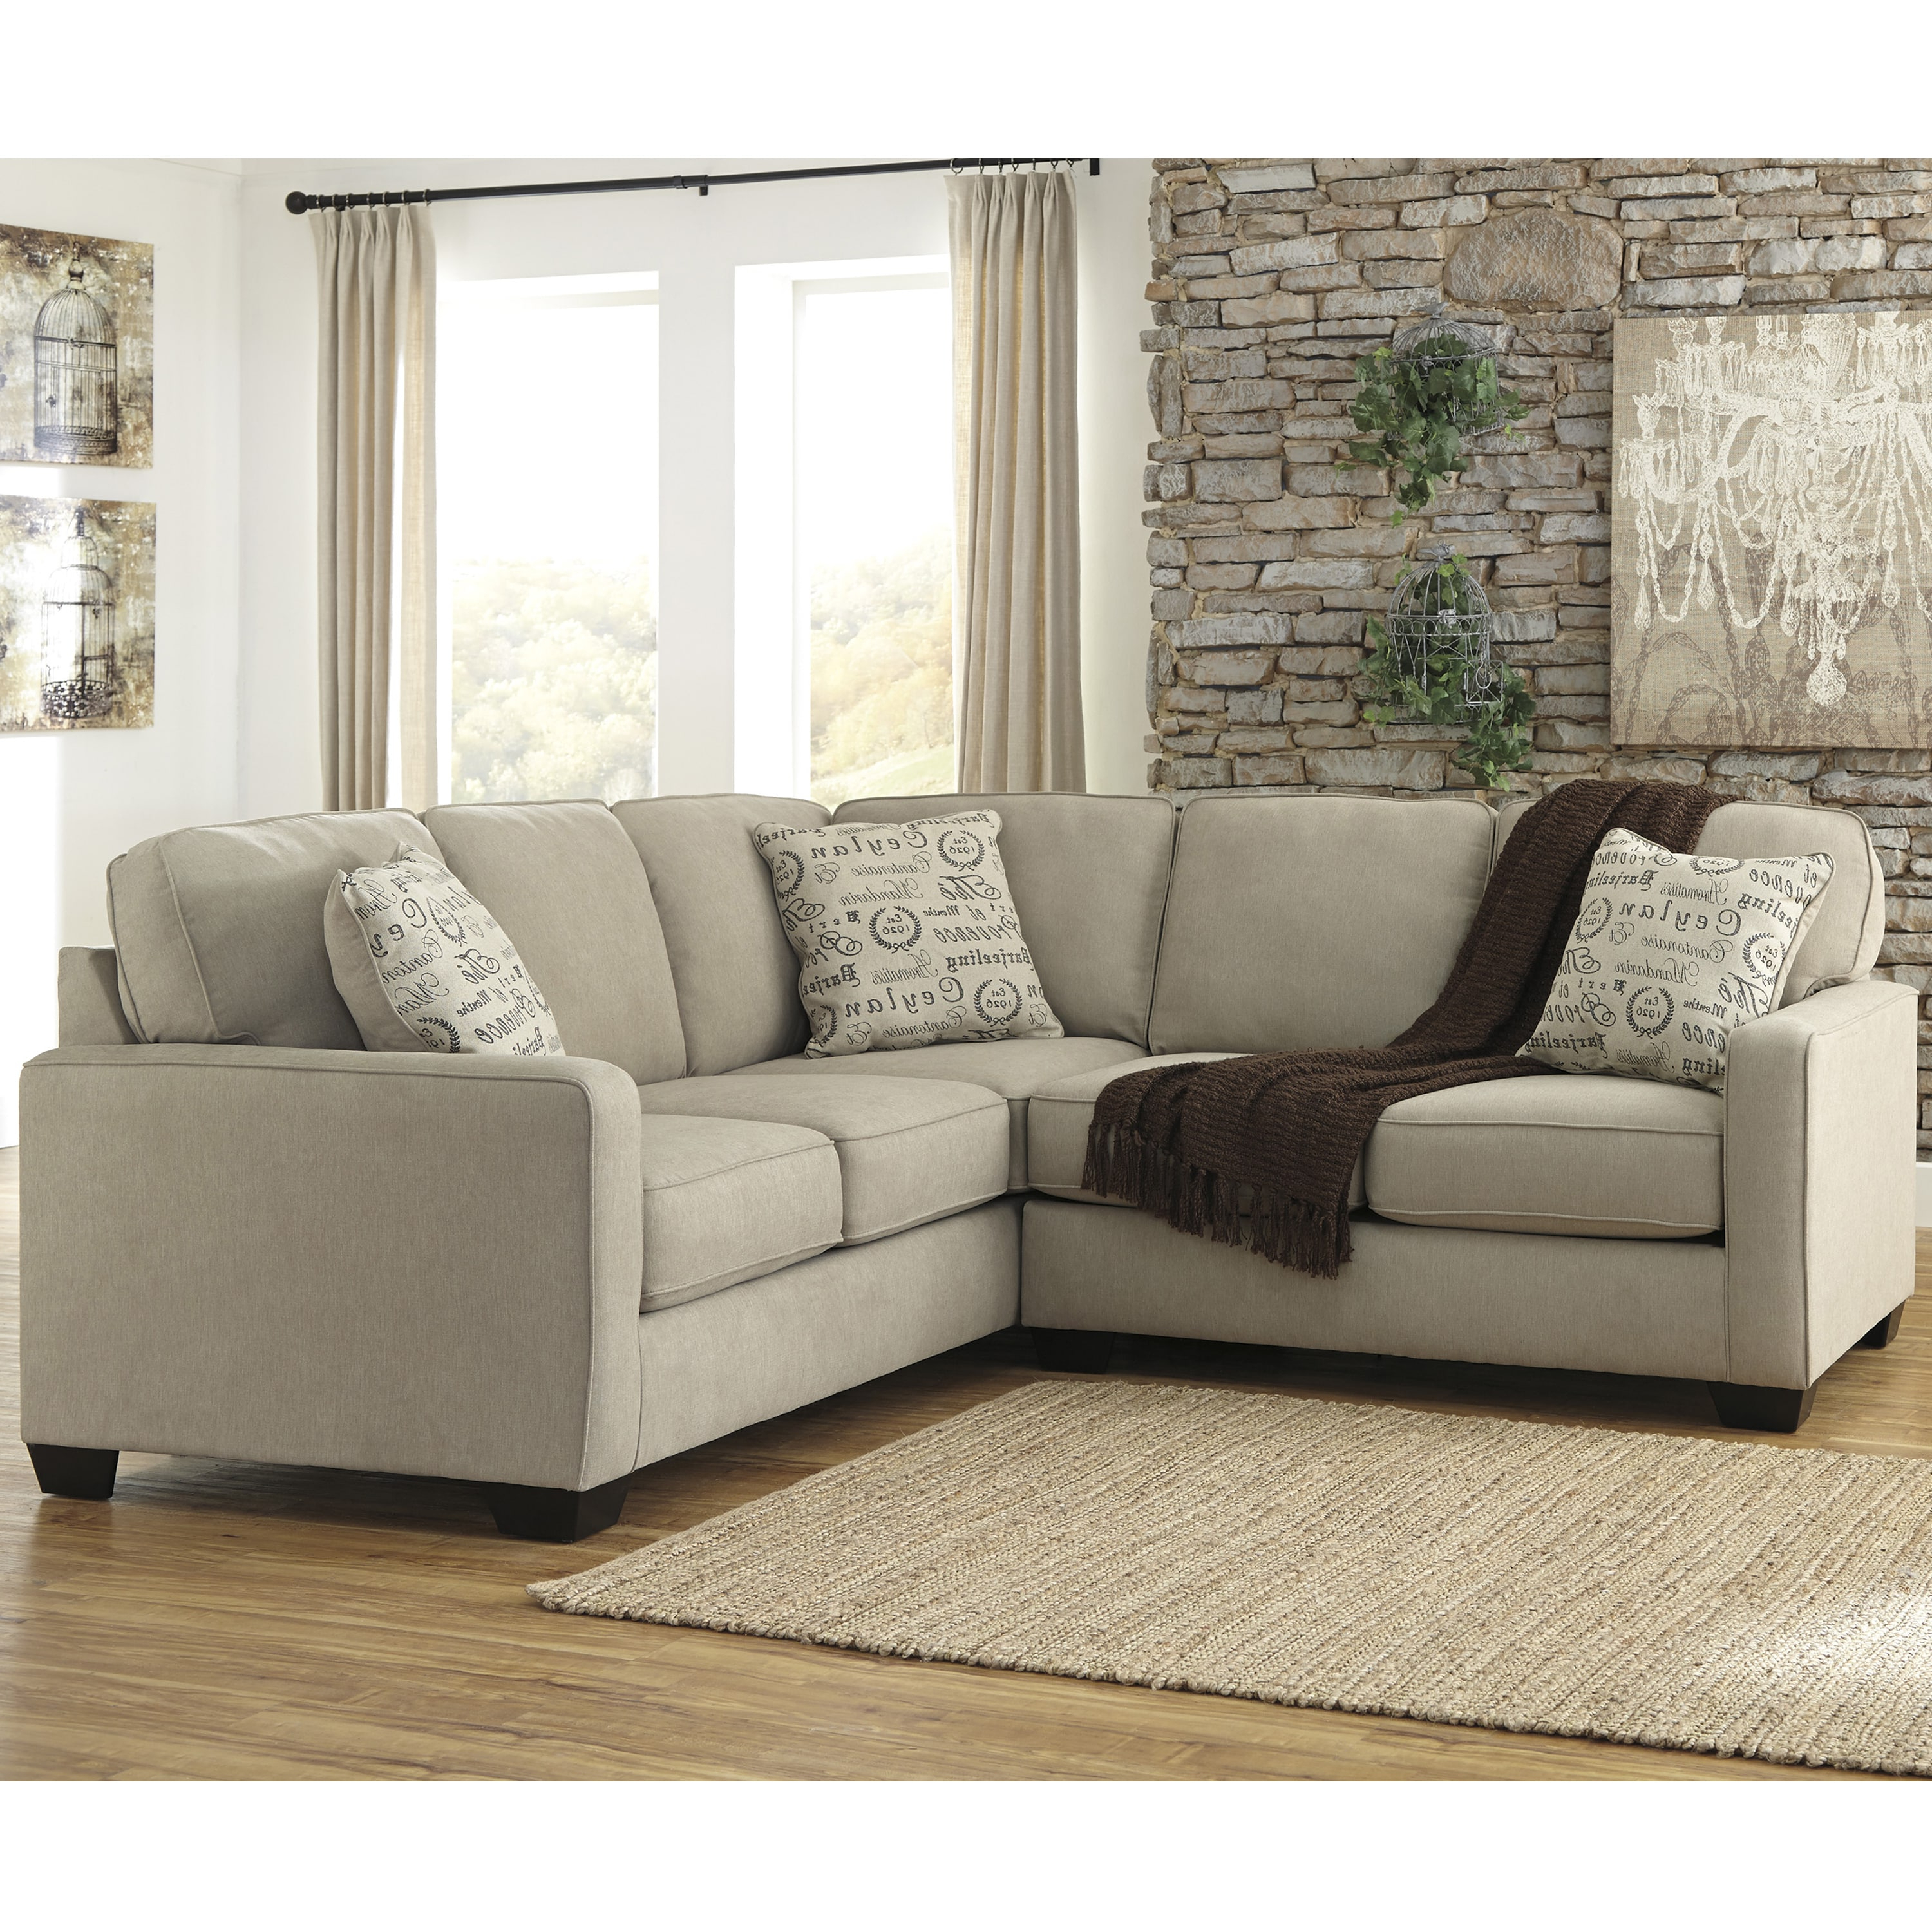 Patola Park Patina Large Sectional W/ Chaise Inside Popular Elm Grande Ii 2 Piece Sectionals (View 9 of 20)